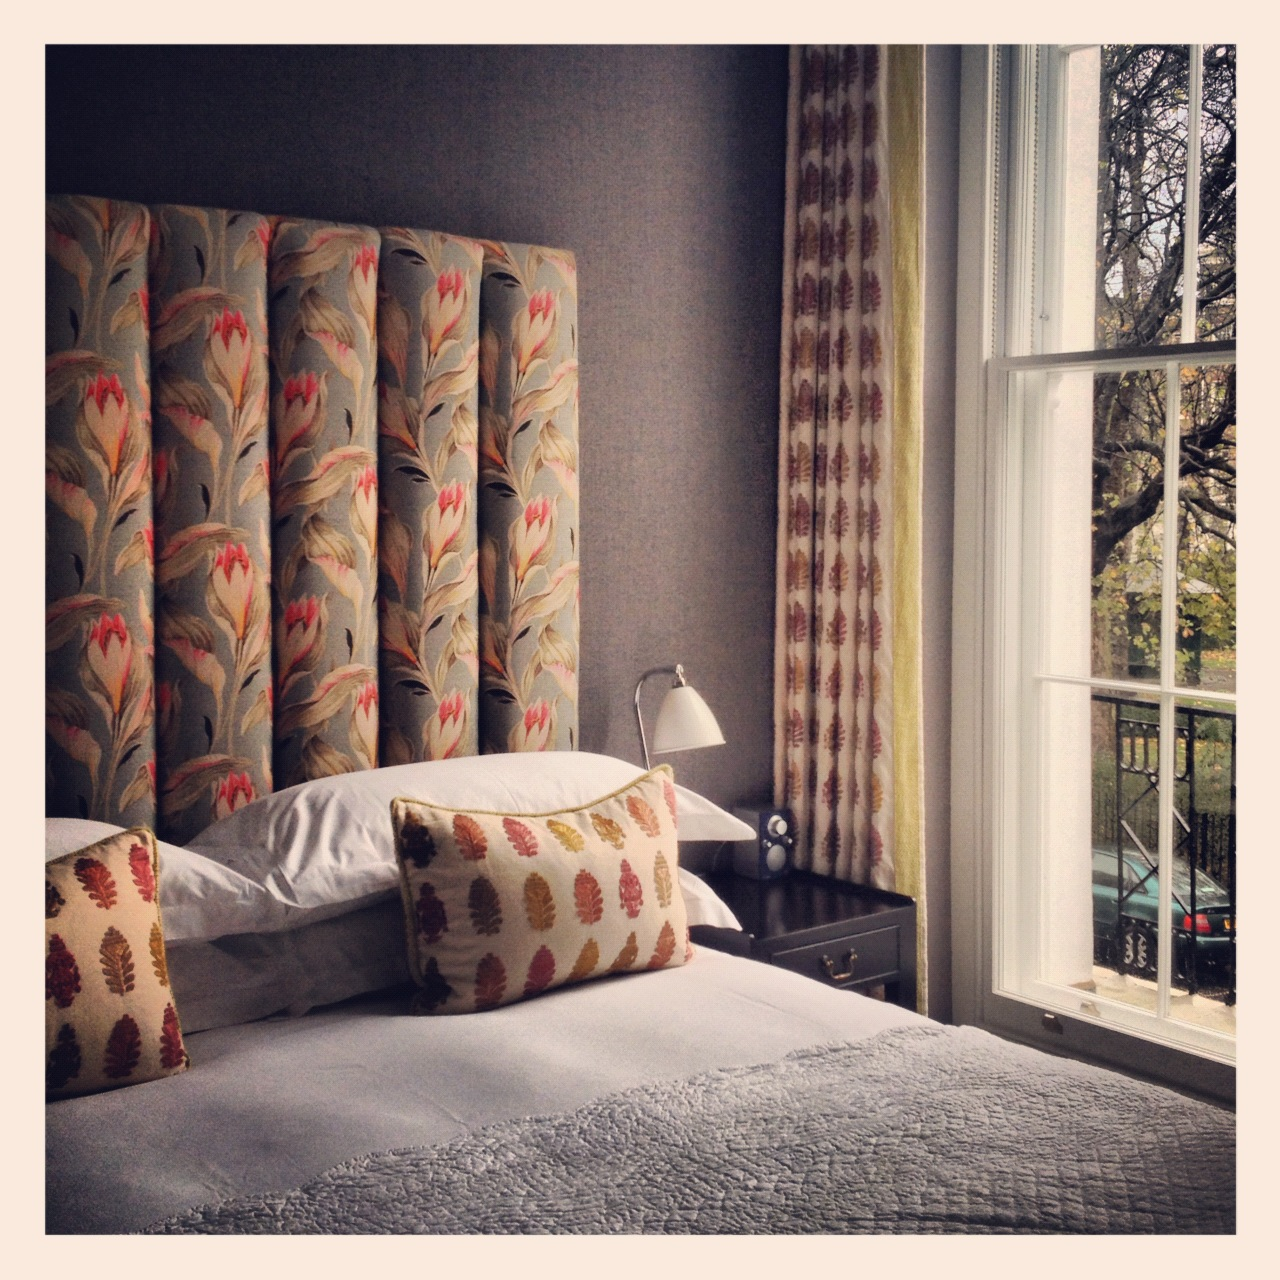 Dorset Square Hotel in London lived up to my (high!) Firmdale expectations, read how Kit Kemp re-invented this gem.